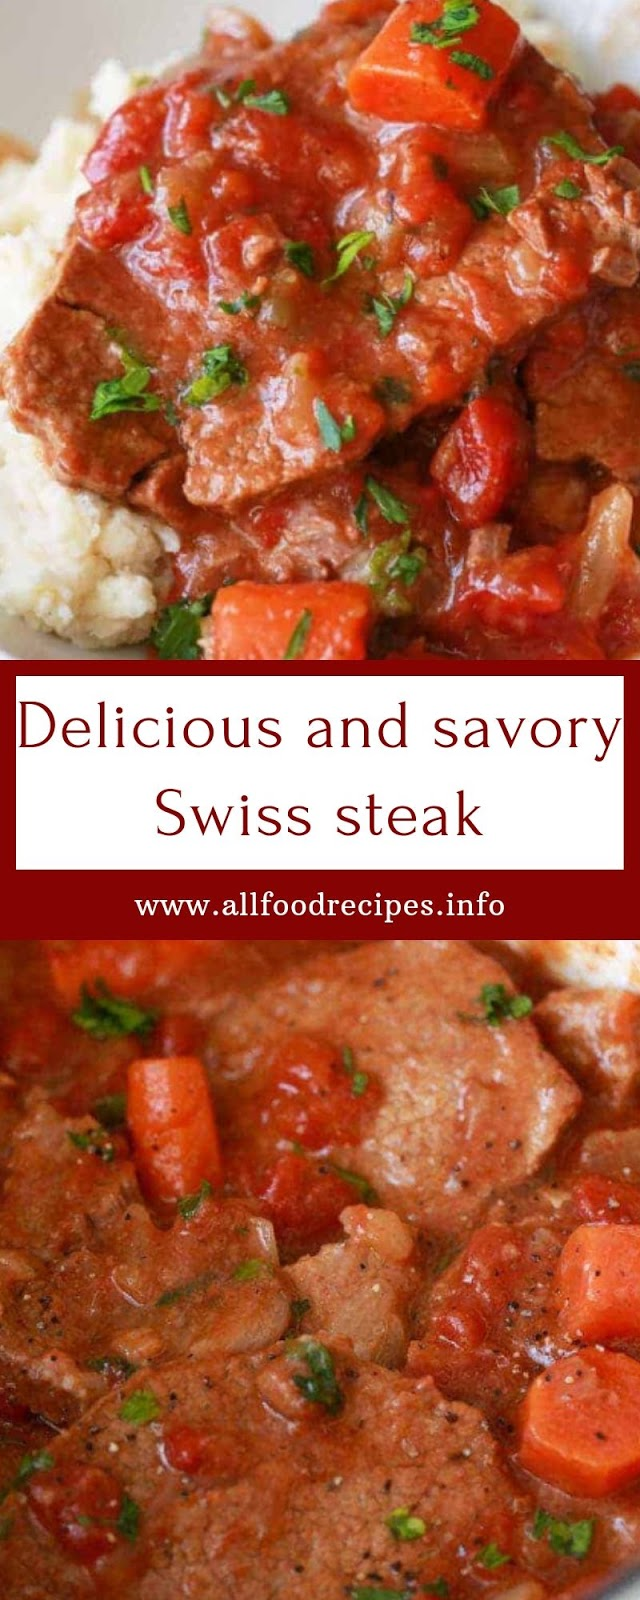 Delicious And savory Swiss steak